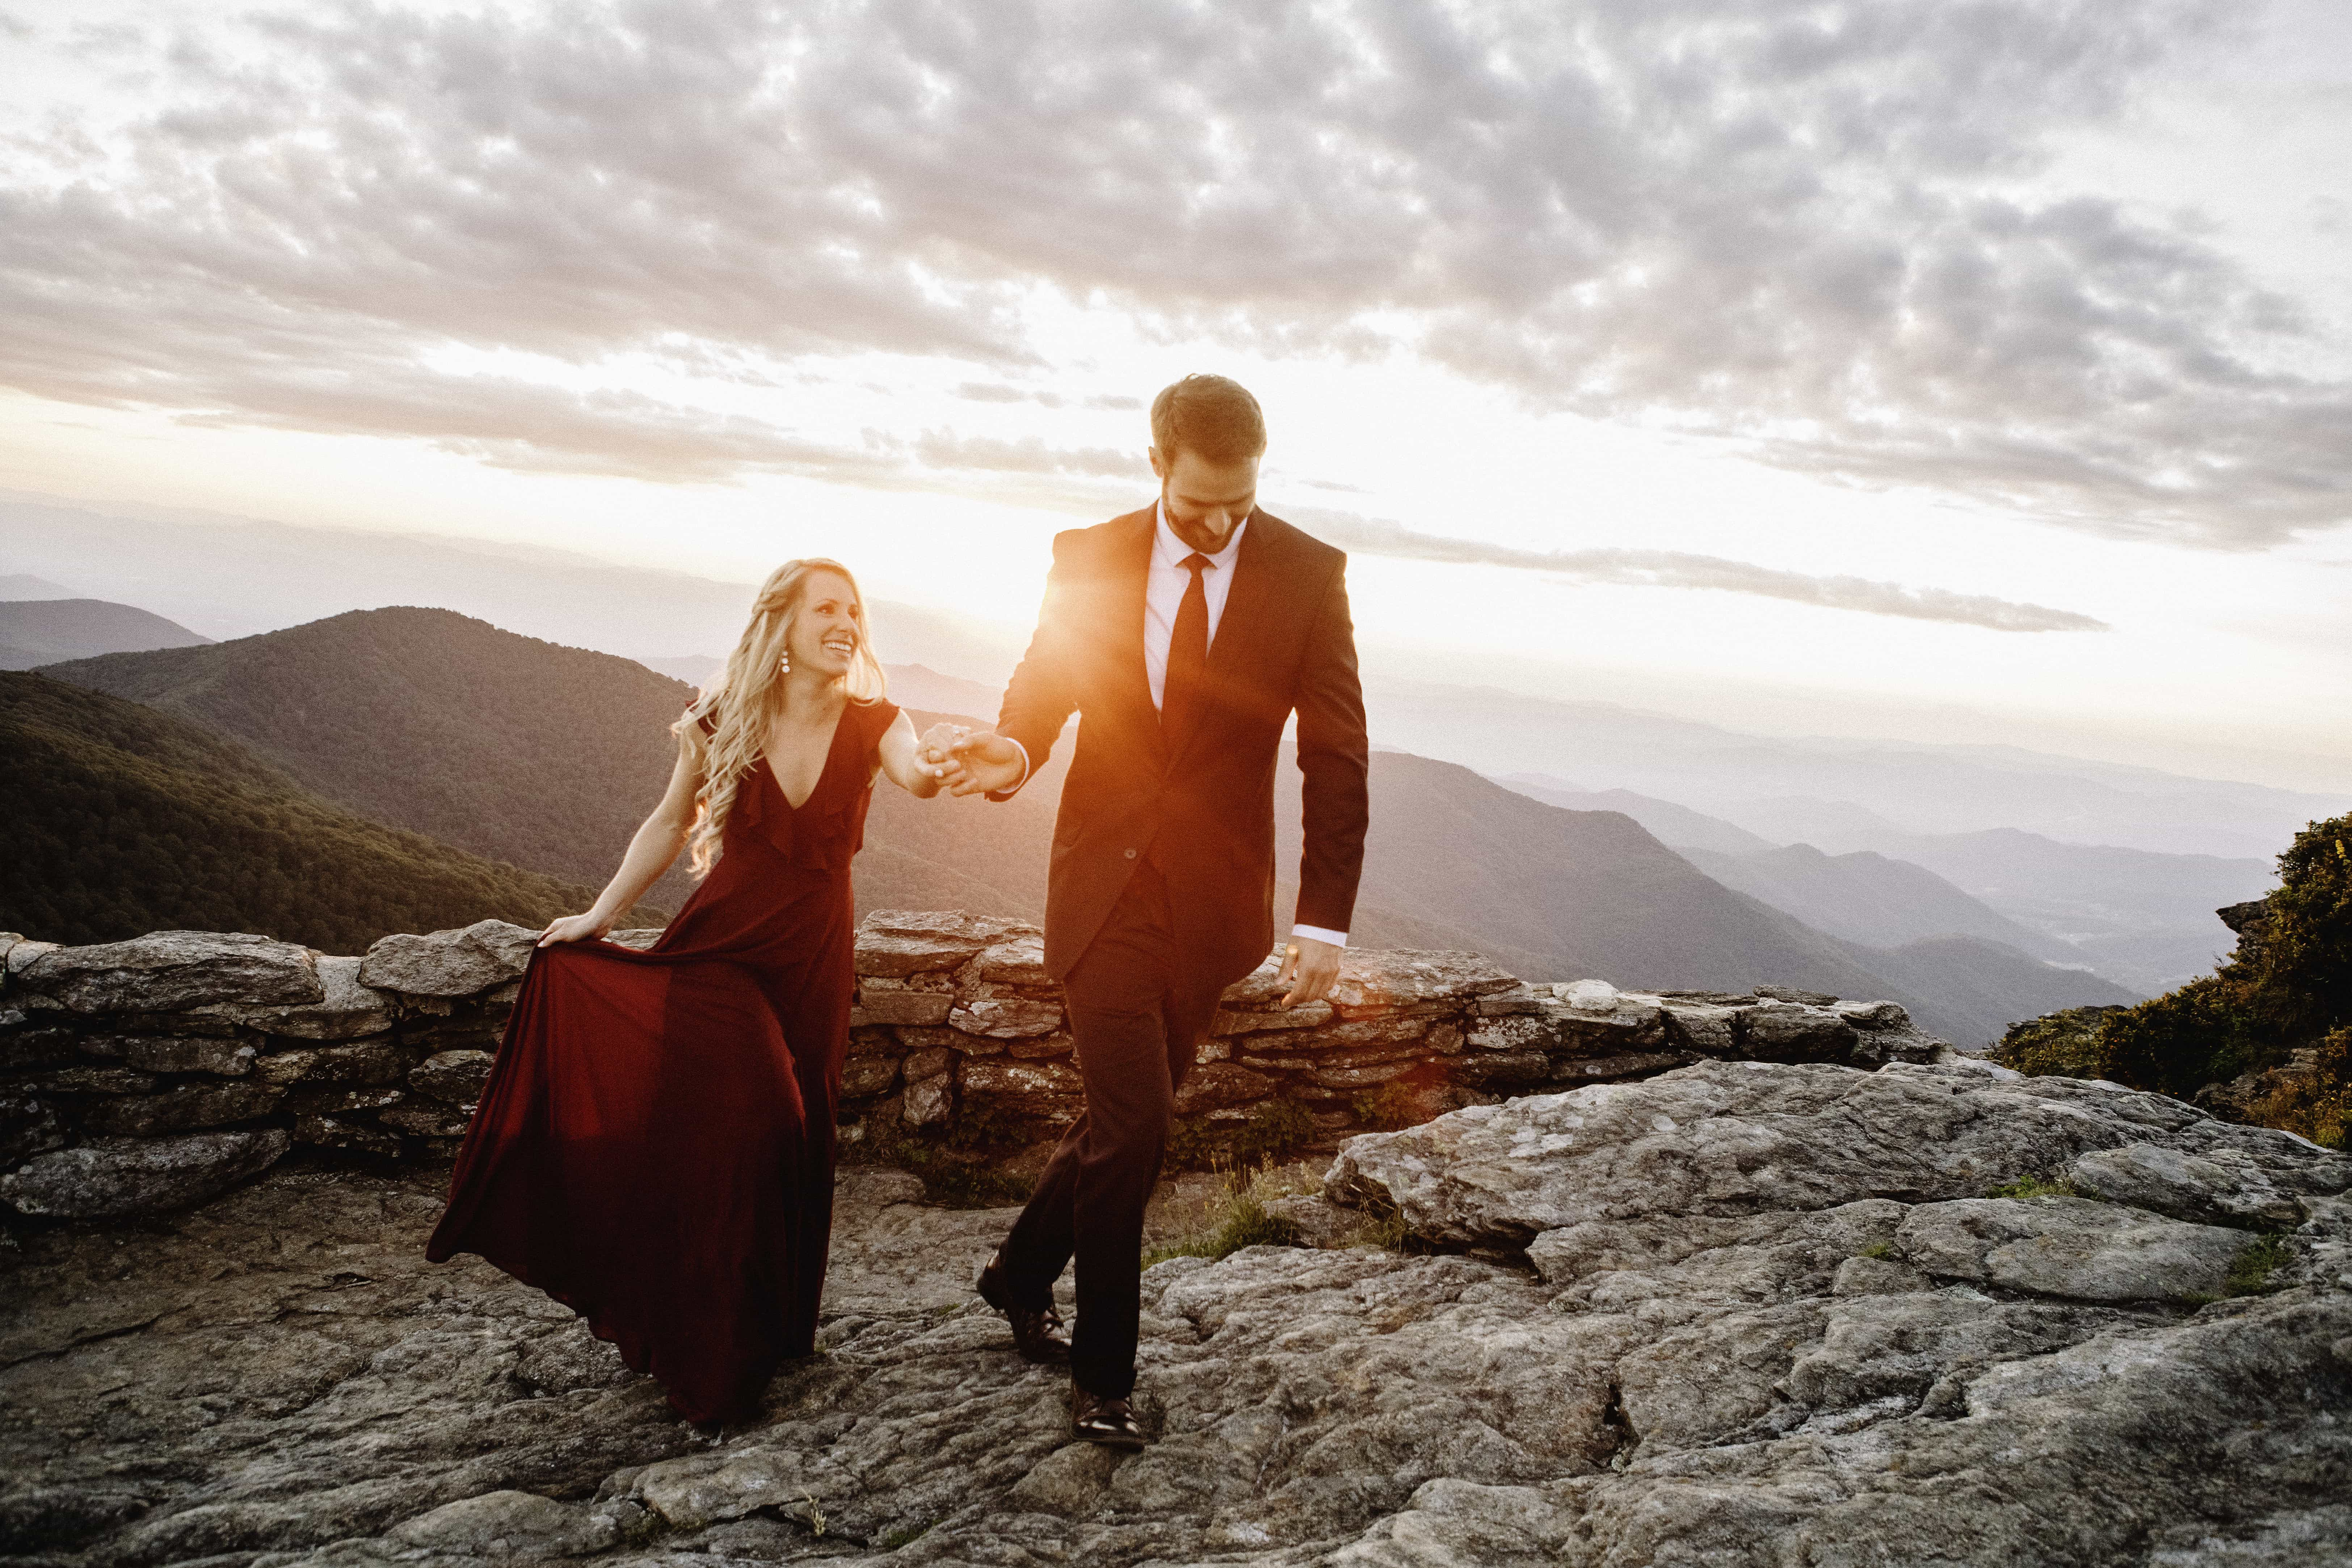 Man in suit holding fiances hand walking along rocky mountain side with mountain range in background at sunset